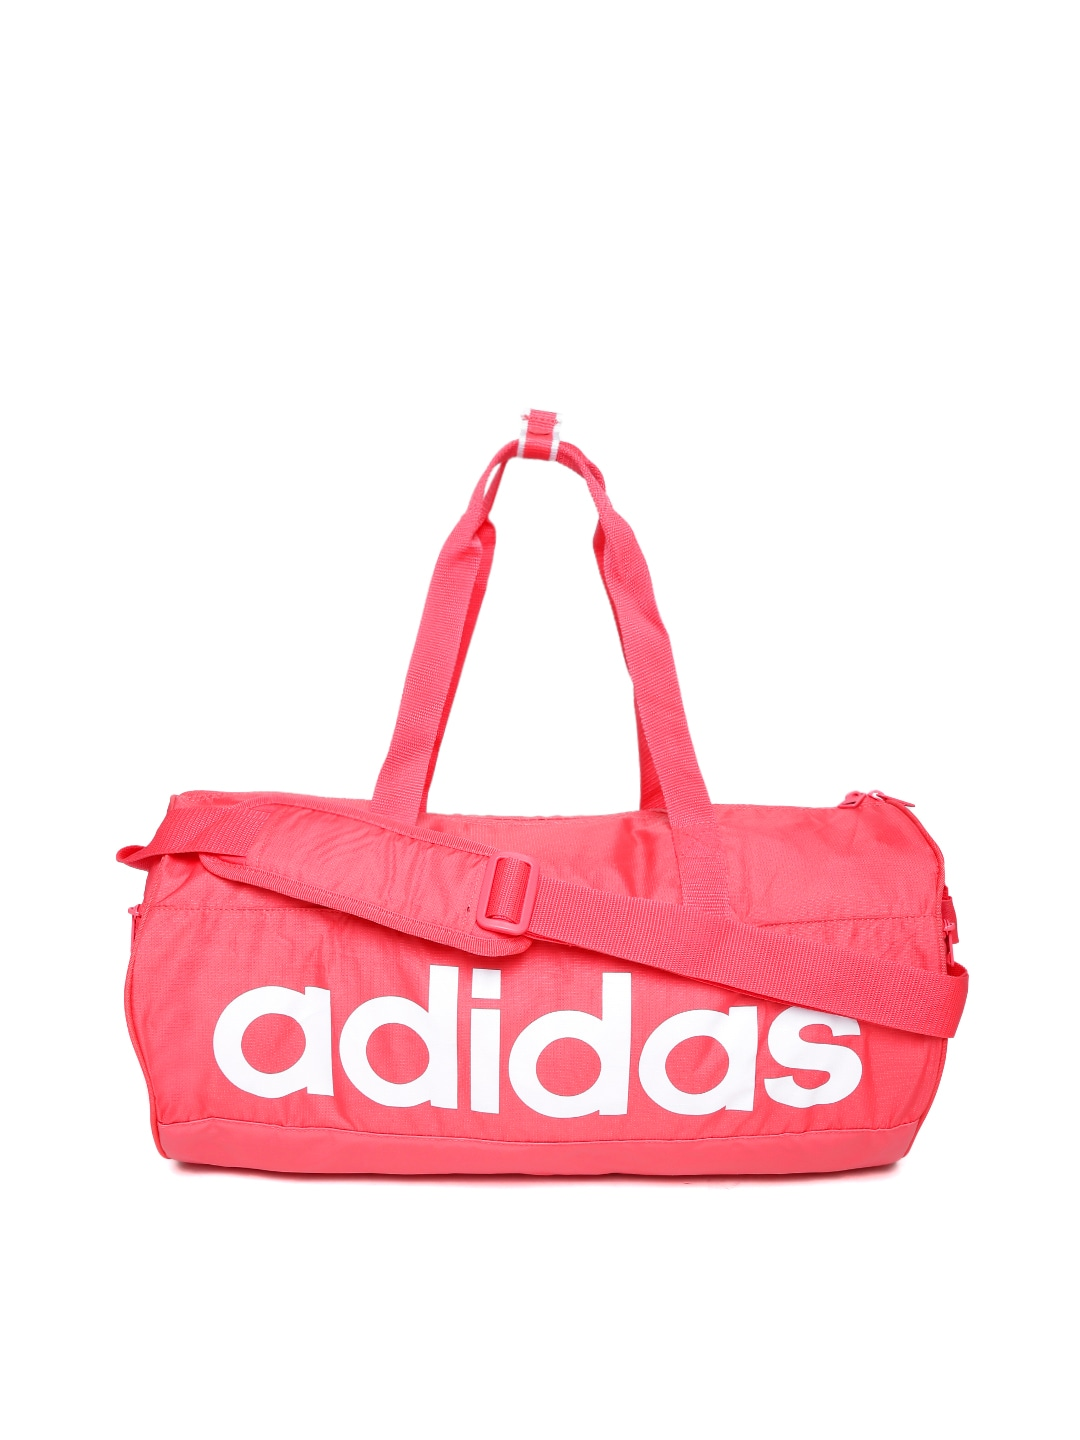 adidas duffle bag for women with fantastic image. Black Bedroom Furniture Sets. Home Design Ideas